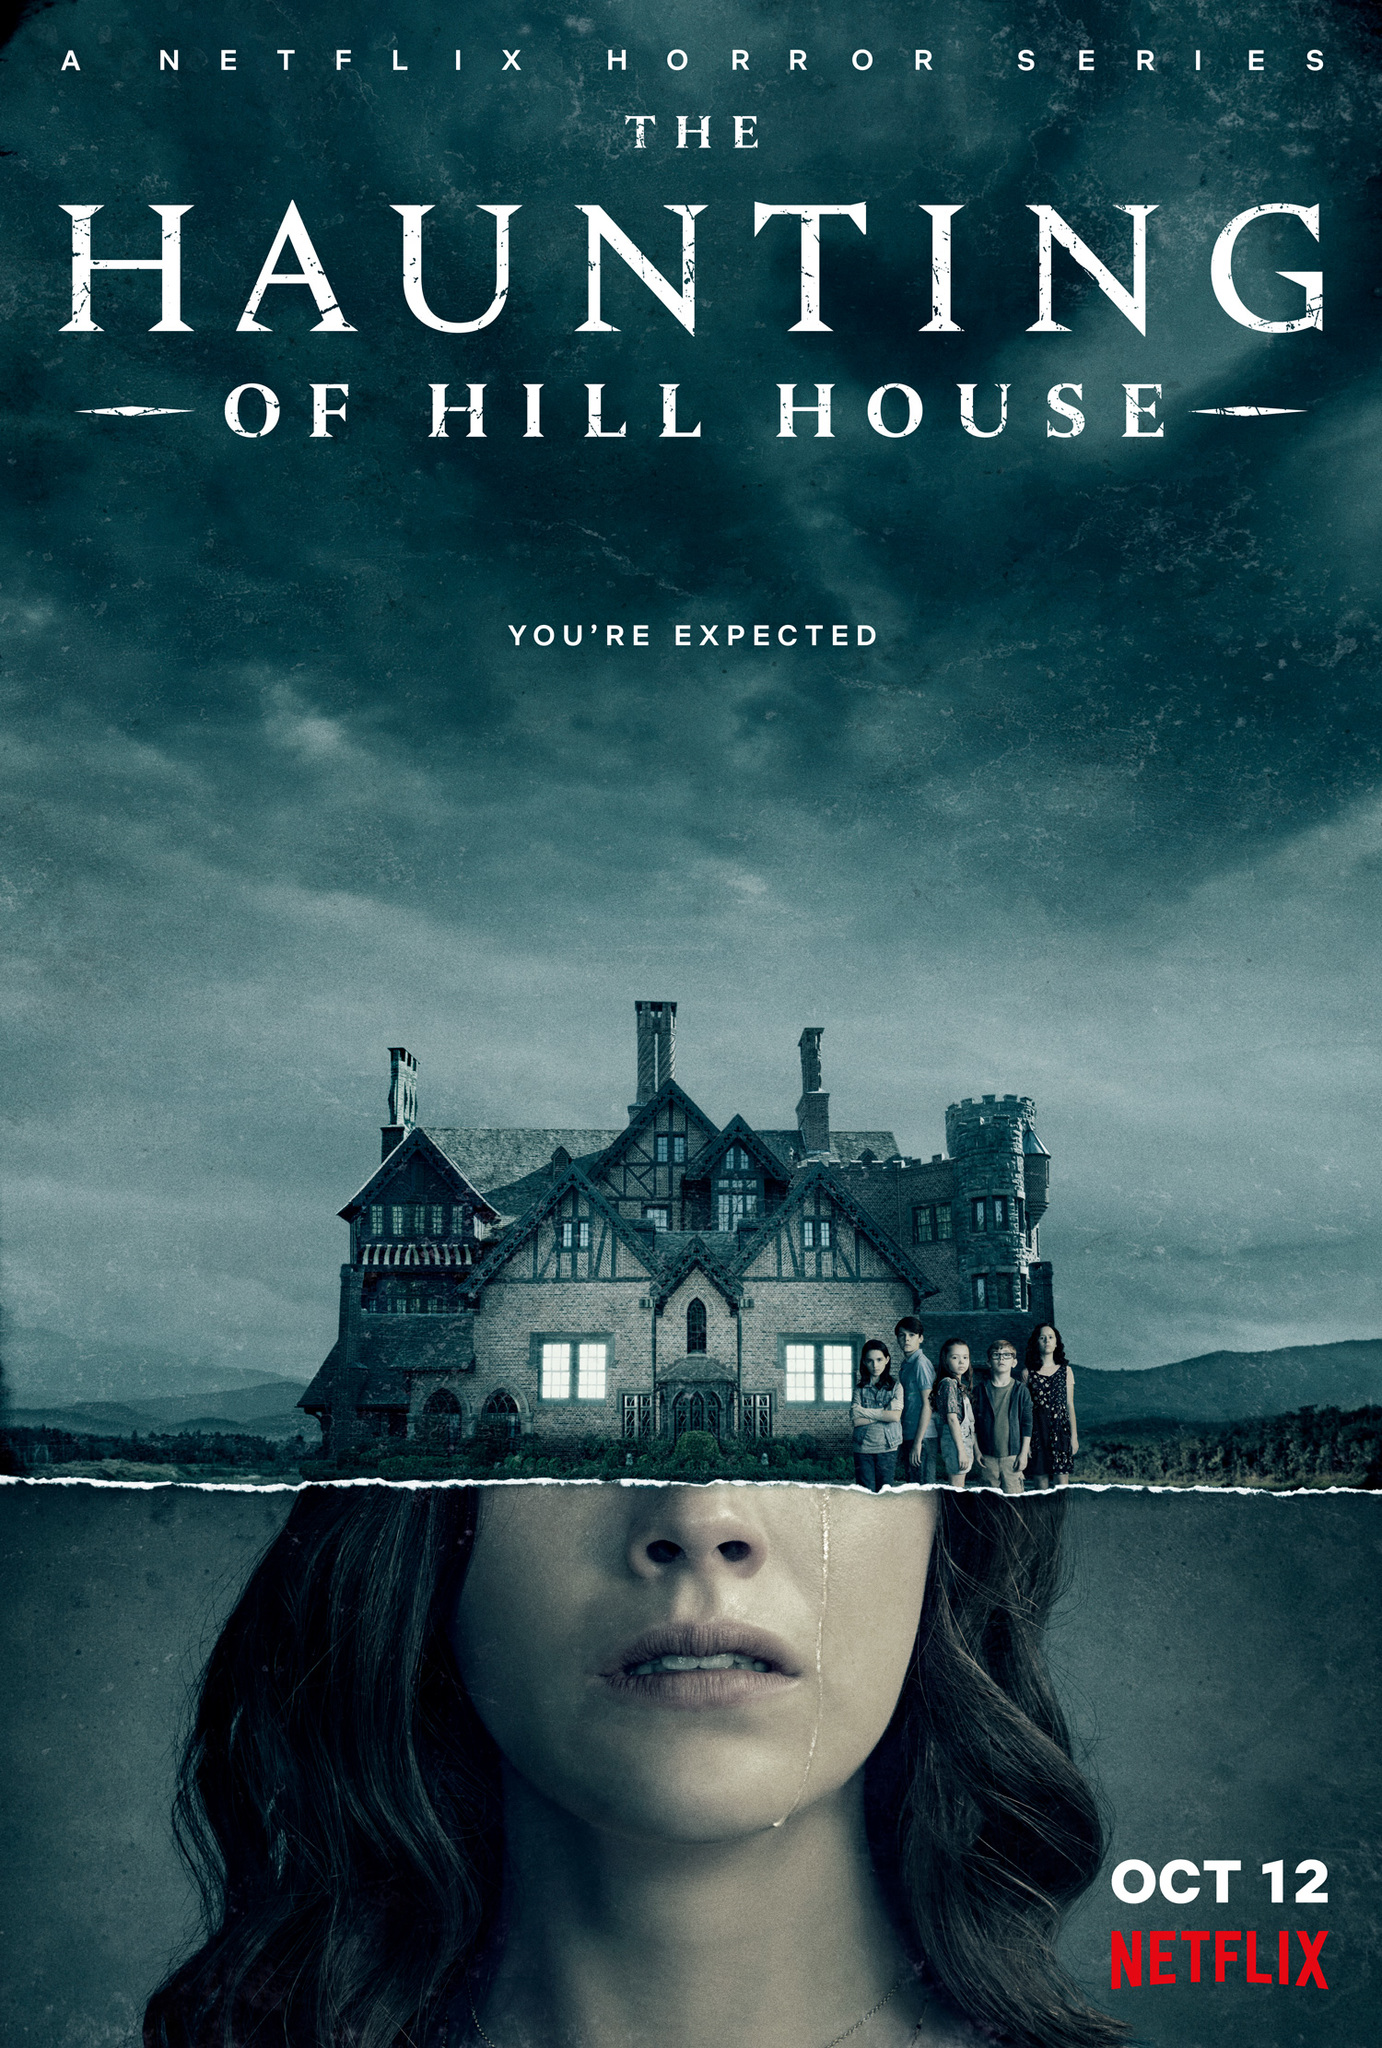 11_28the_haunting_of_hill_house.jpg